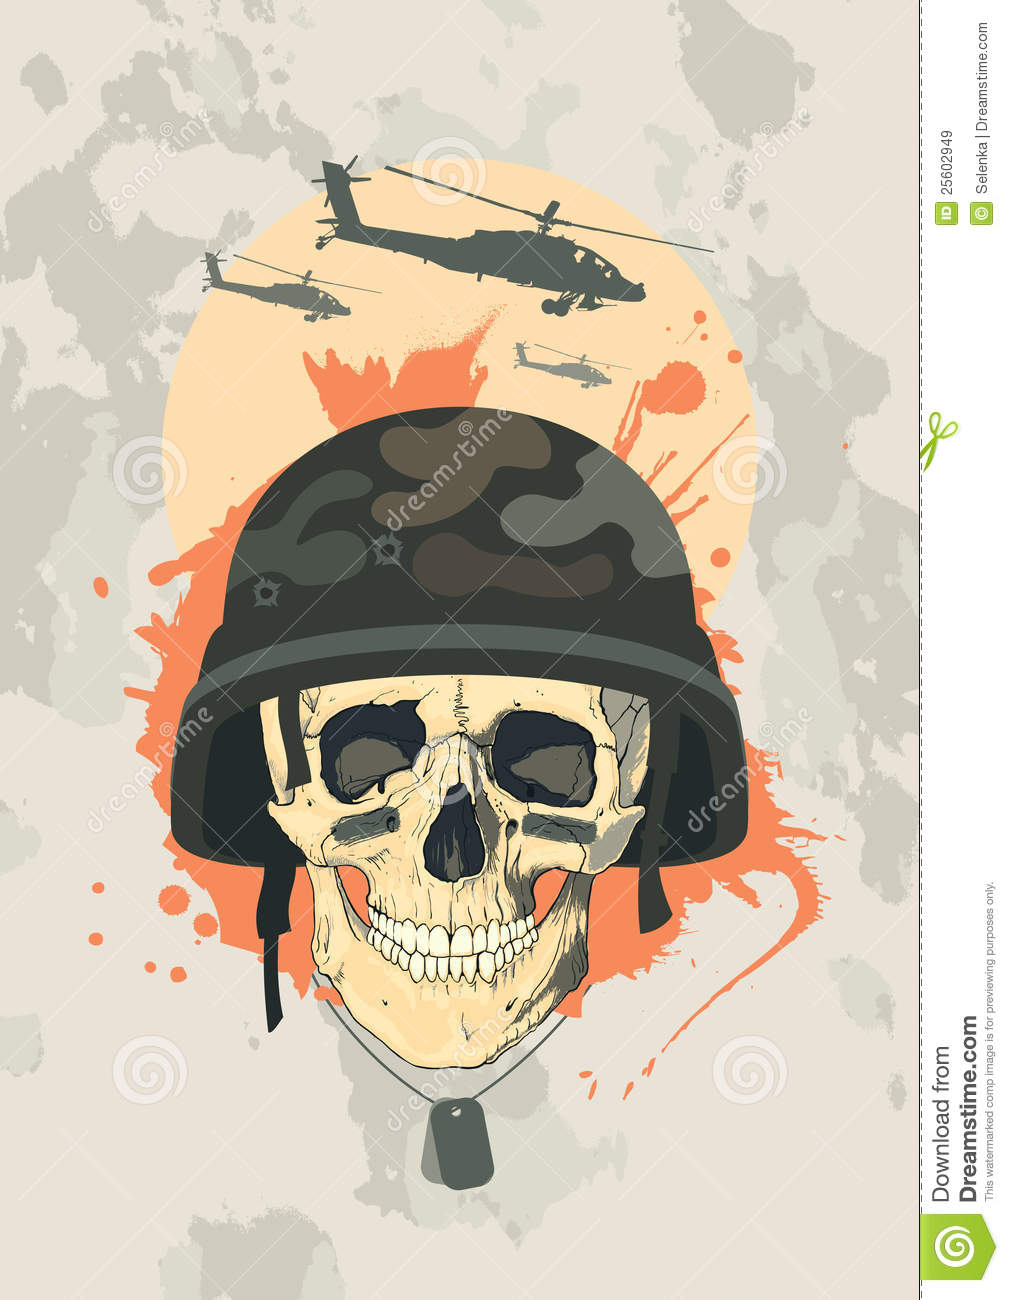 Military Design With Skull. Stock Vector - Illustration of ...